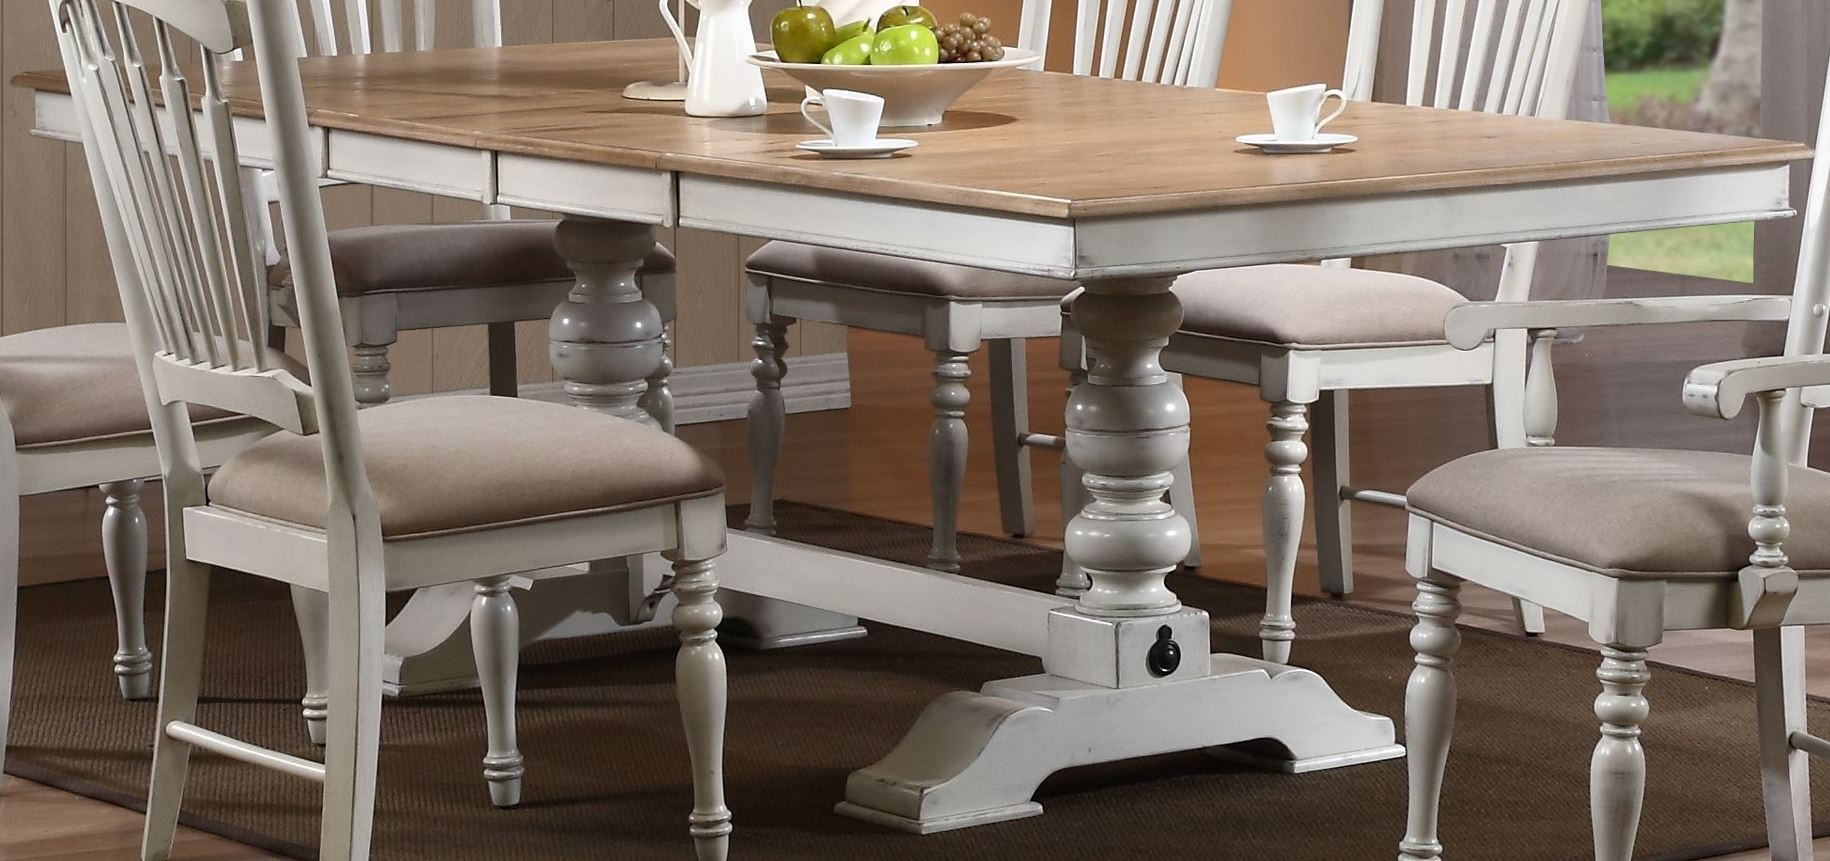 Hollyhock Distressed White Dining Table from Homelegance